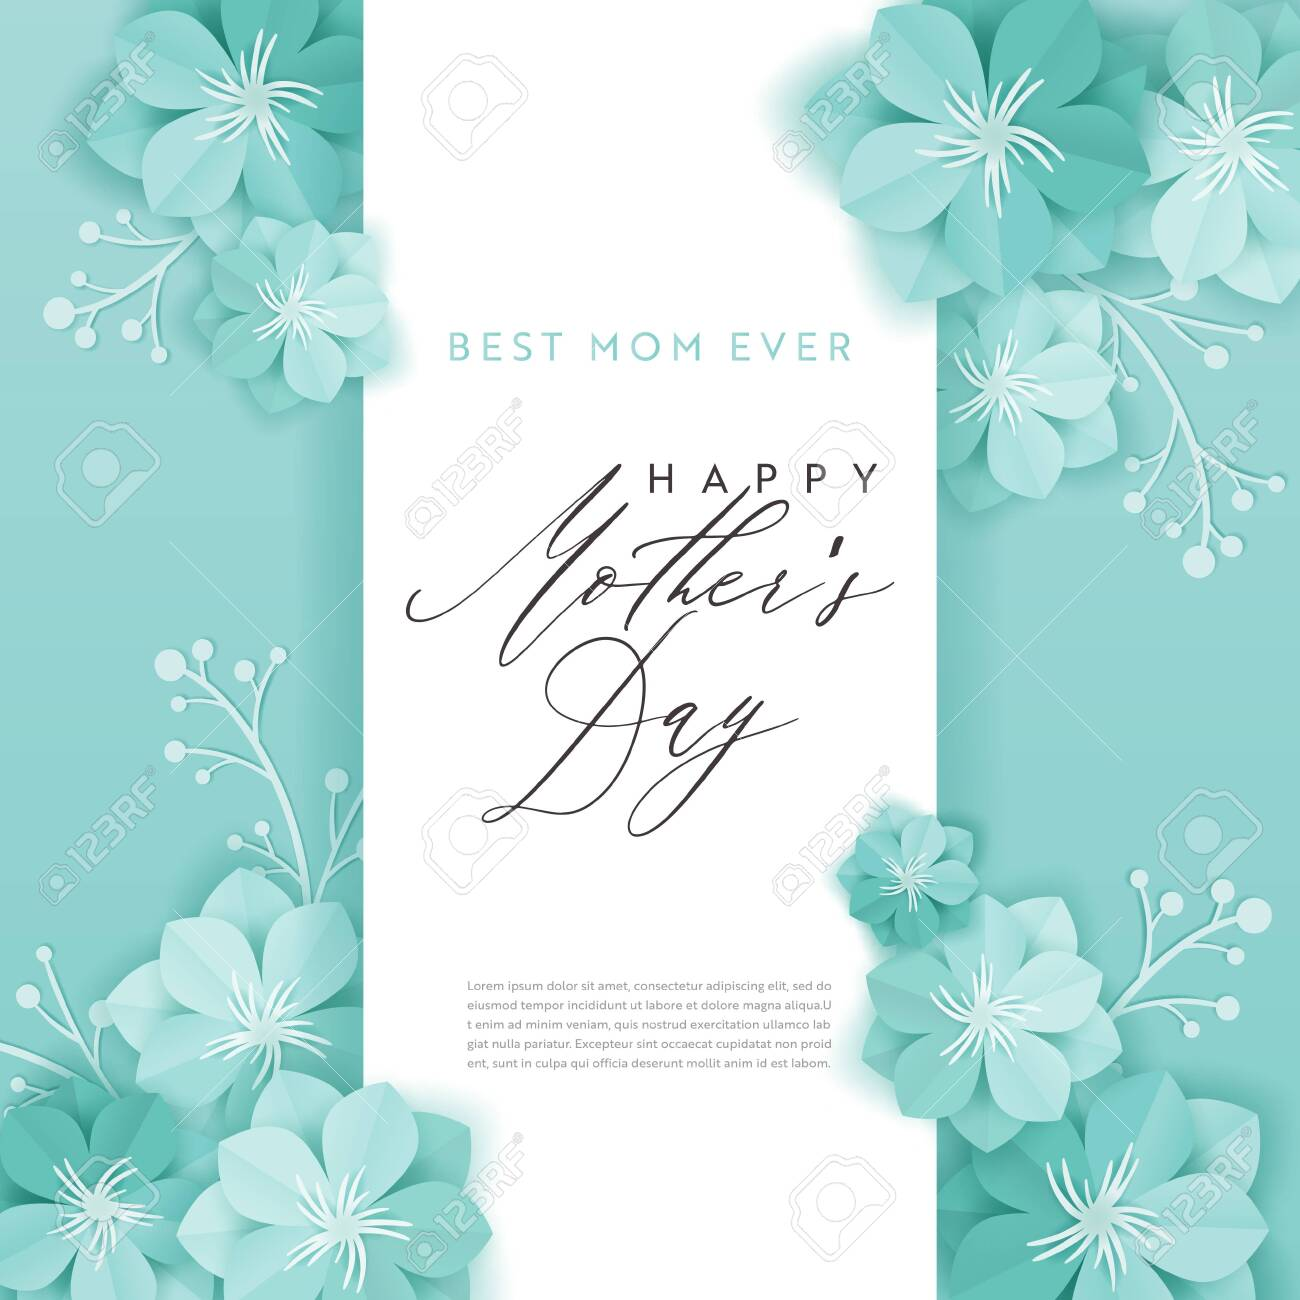 Happy Mothers Day Holiday Banner. Mother Day Greeting Card Hello Spring Paper Cut Design with Flowers and Floral Elements Typography Poster. Vector illustration - 122034438